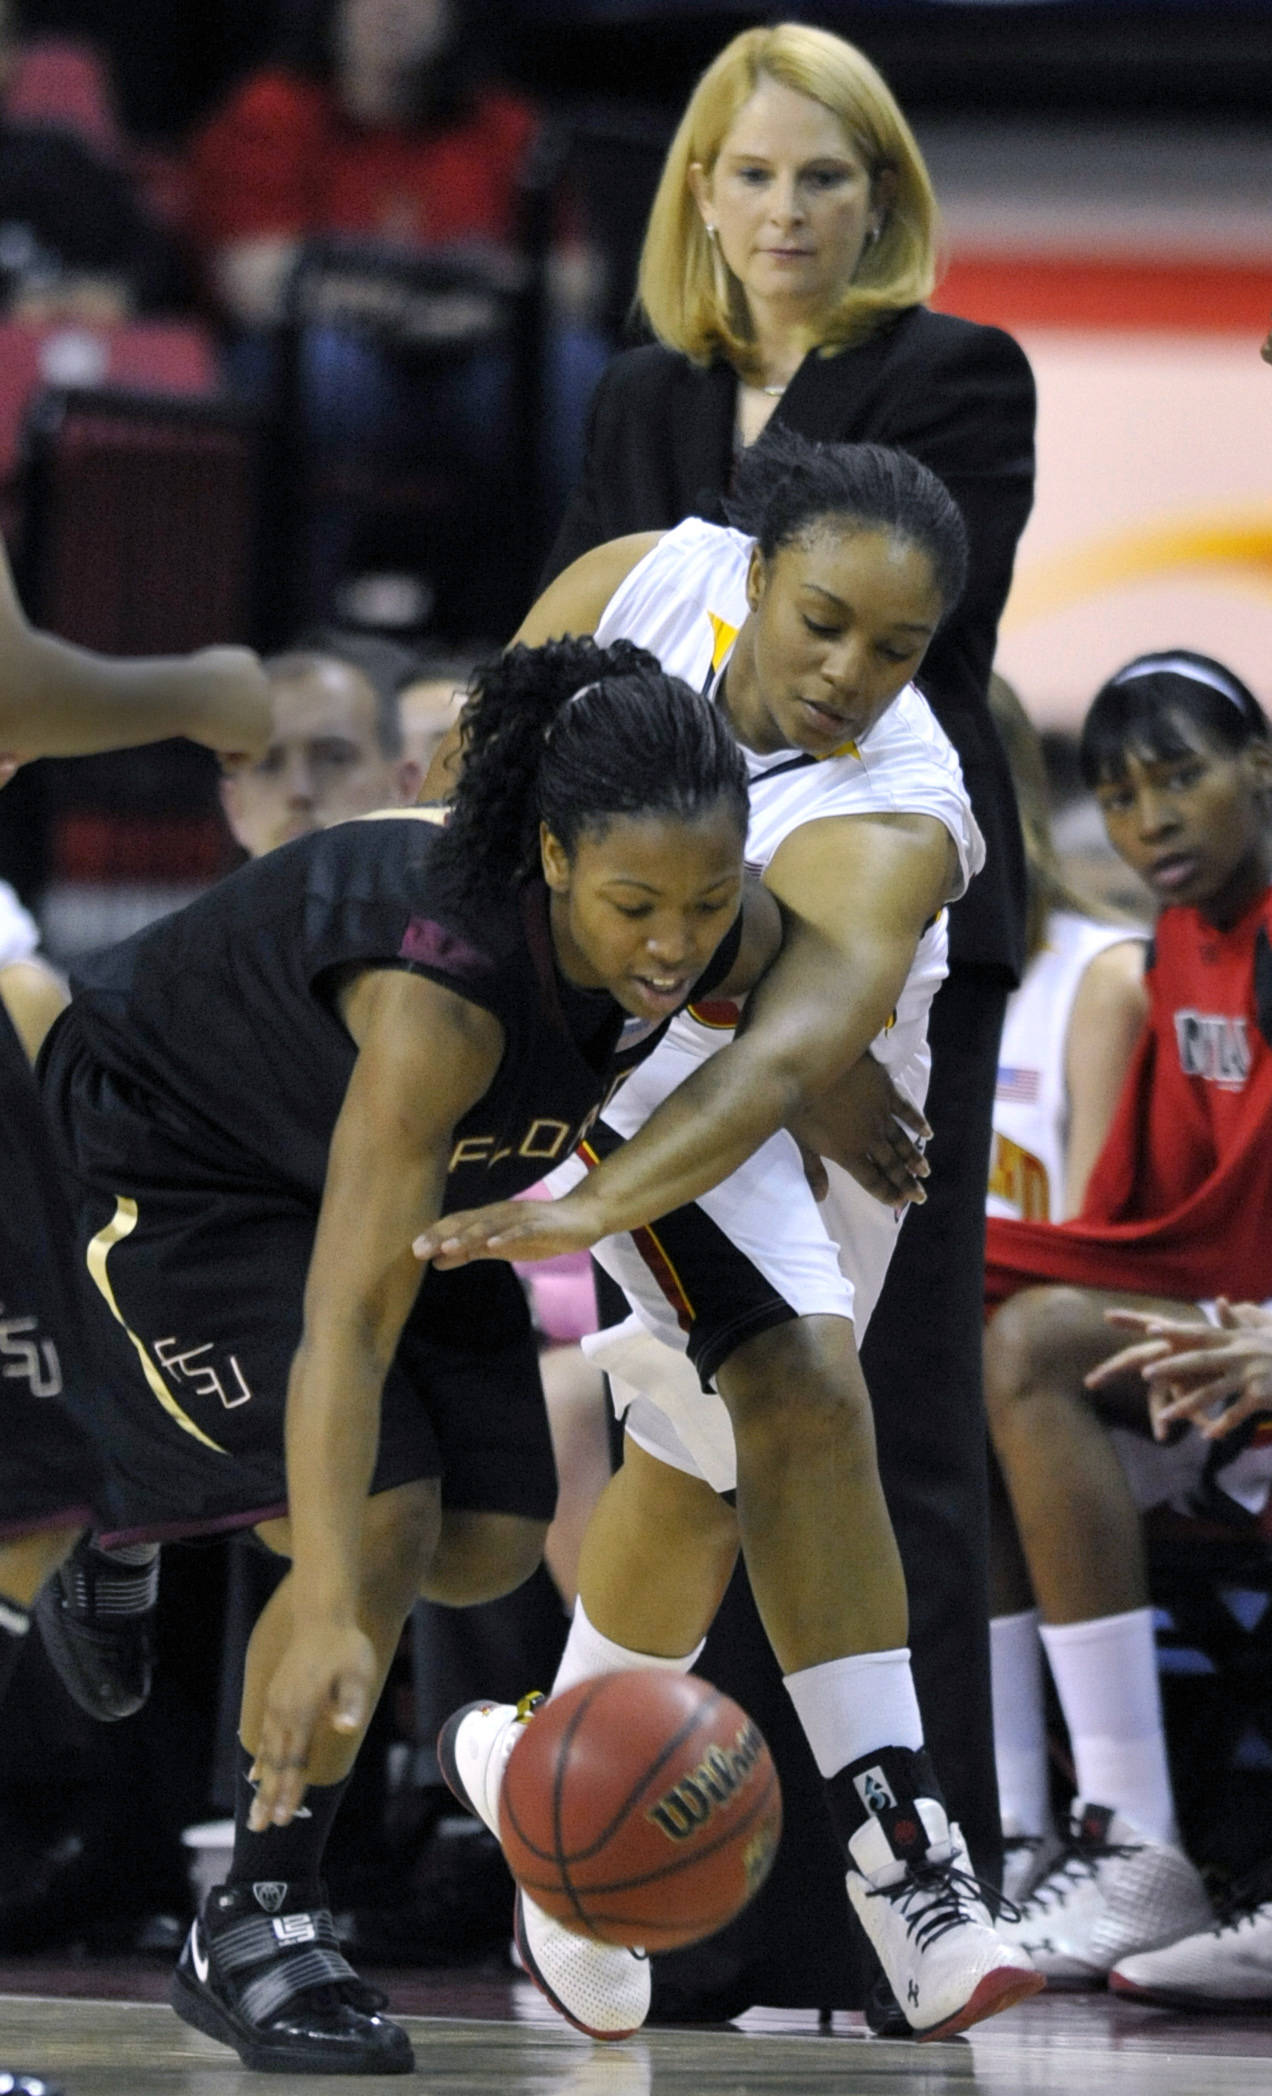 Florida State's Angel Gray and Maryland's Anjale Barrett struggle for the ball.